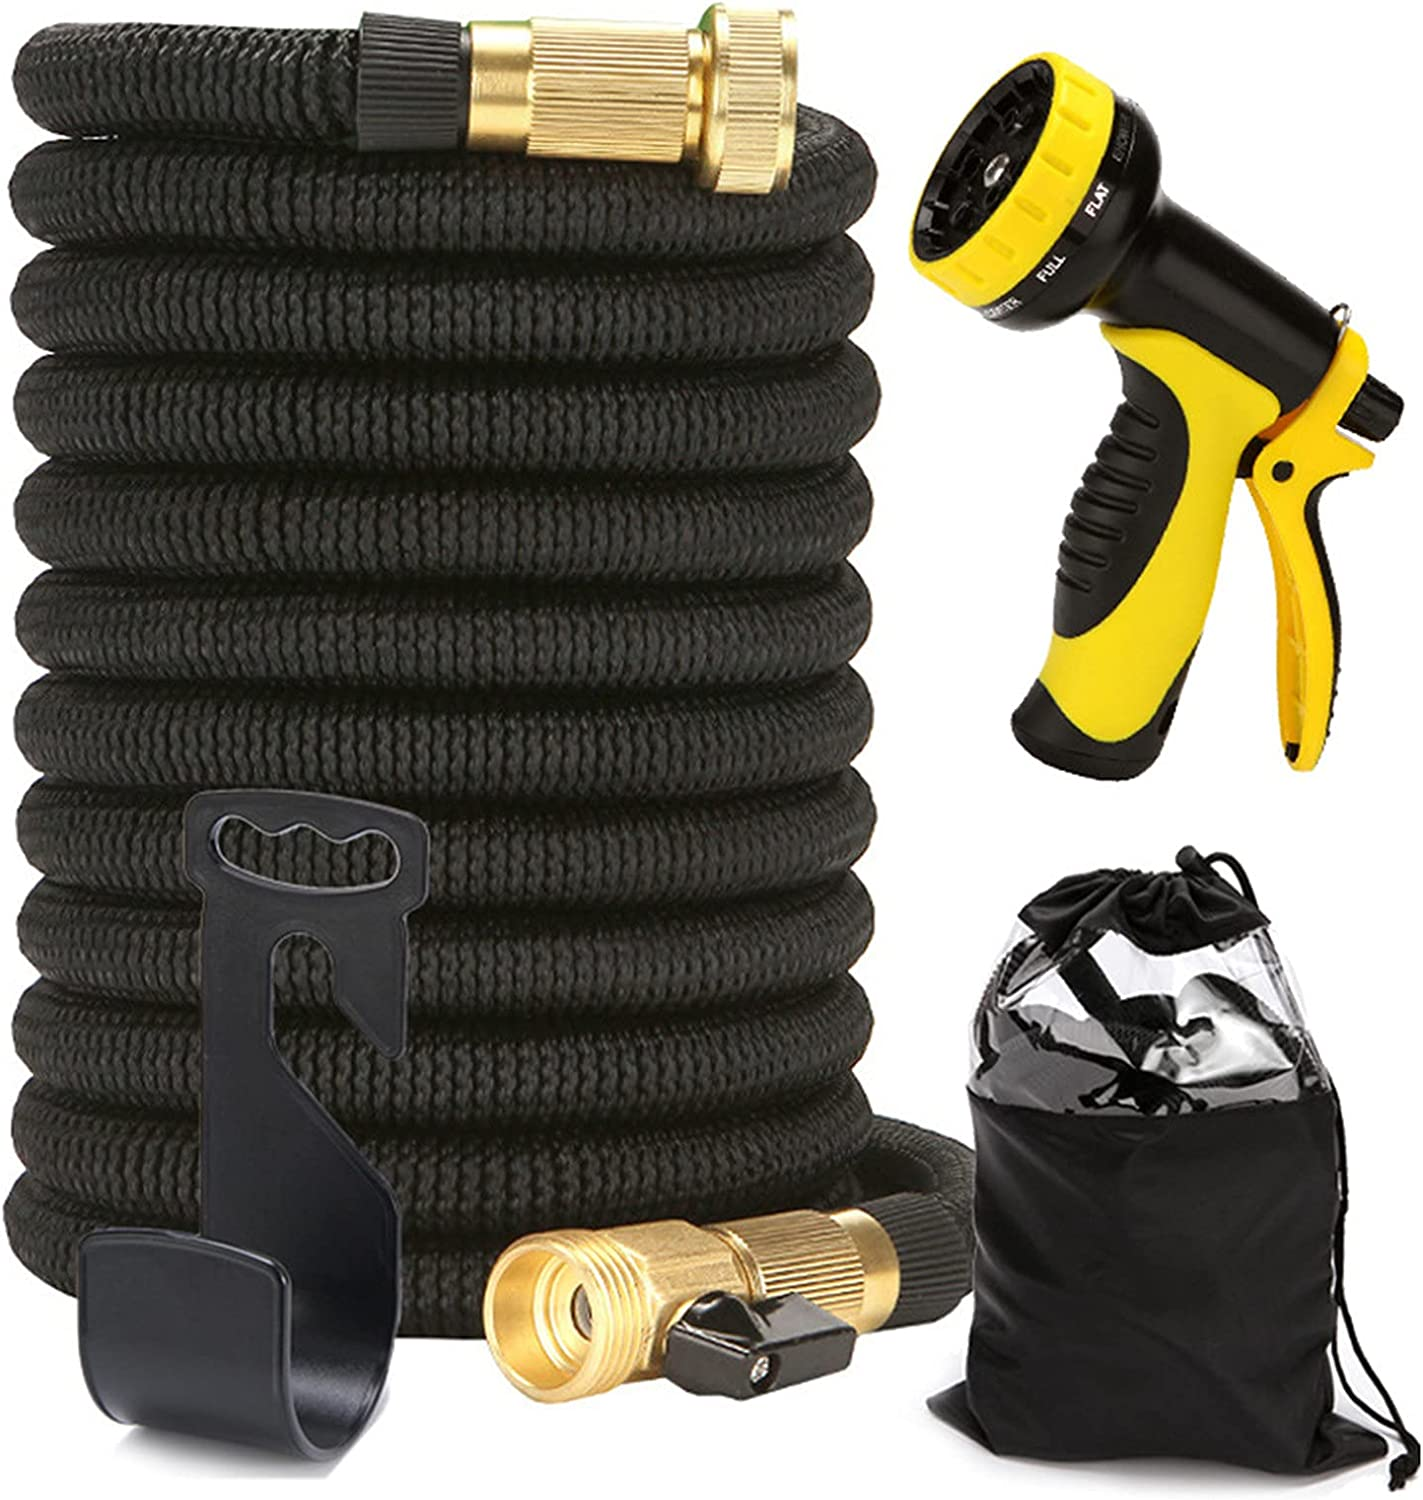 Garden Hose,Expandable Garden Hose 100ft Water Hose with 10 Function Nozzle and Durable 3-Layers Latex,Leakproof Design,Water Hose with Solid Fittings,High Pressure Pistol Grip Sprayer (100FT)